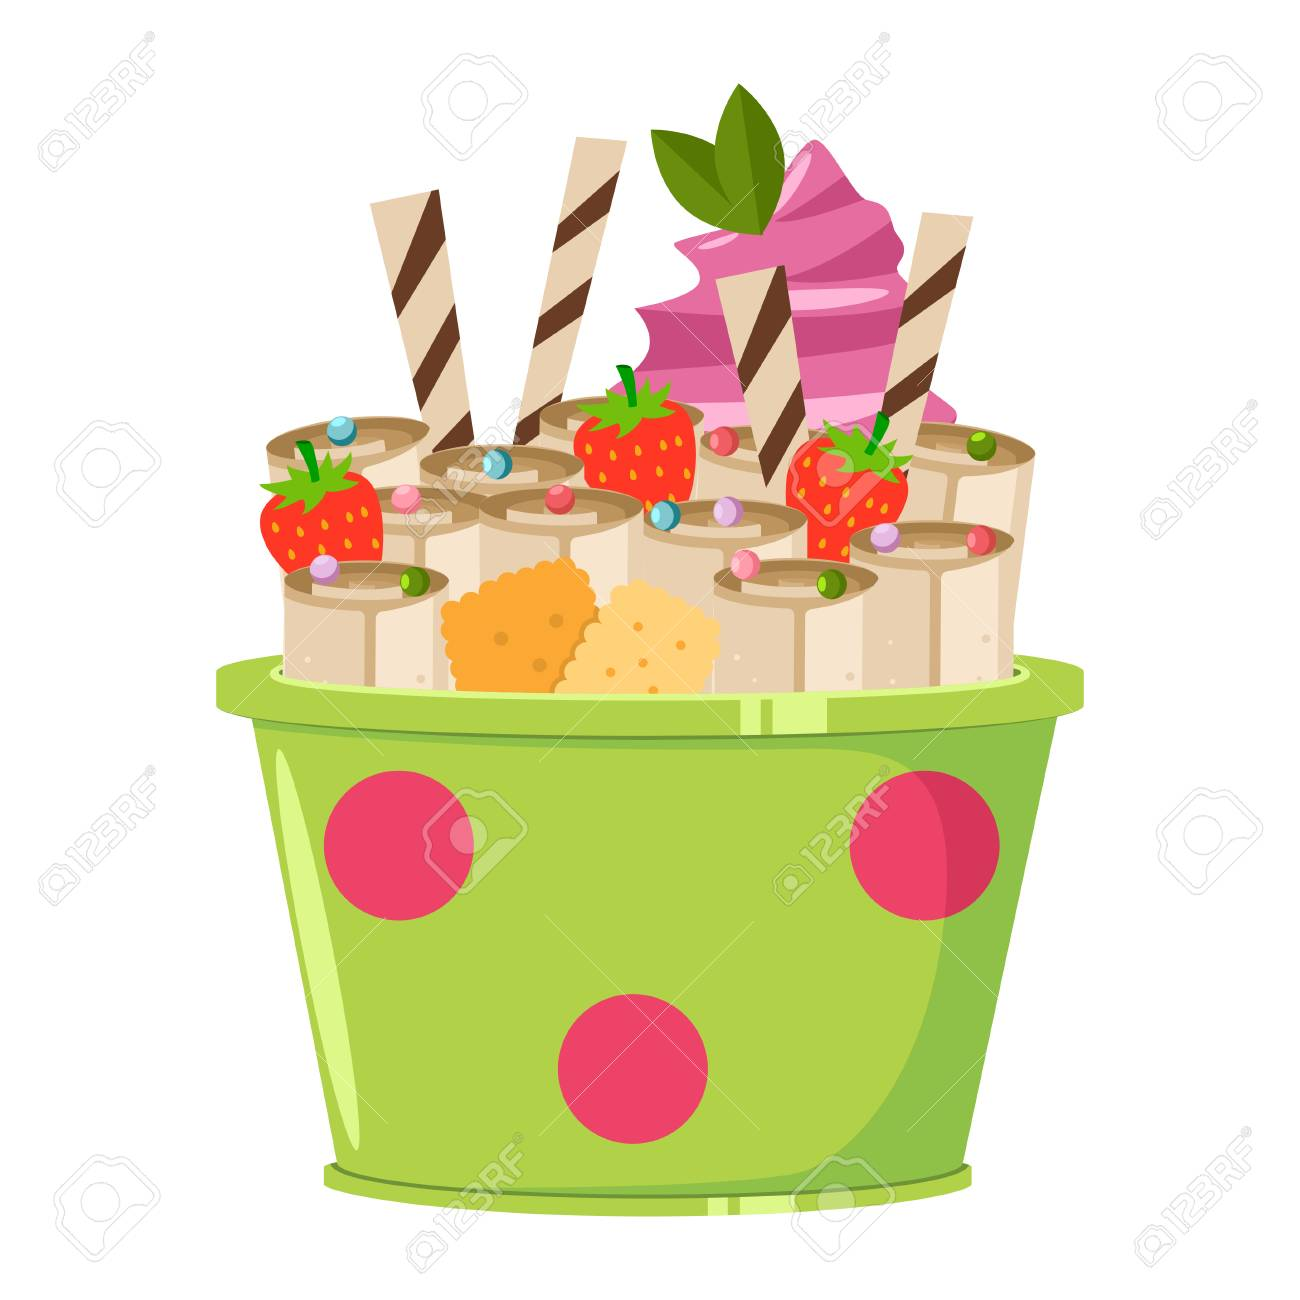 Thailand ice cream roll with waffle, cookie, mint, strawberry and lolly candy. Vector cartoon flat icon or logo isolated on a white background. - 123791839